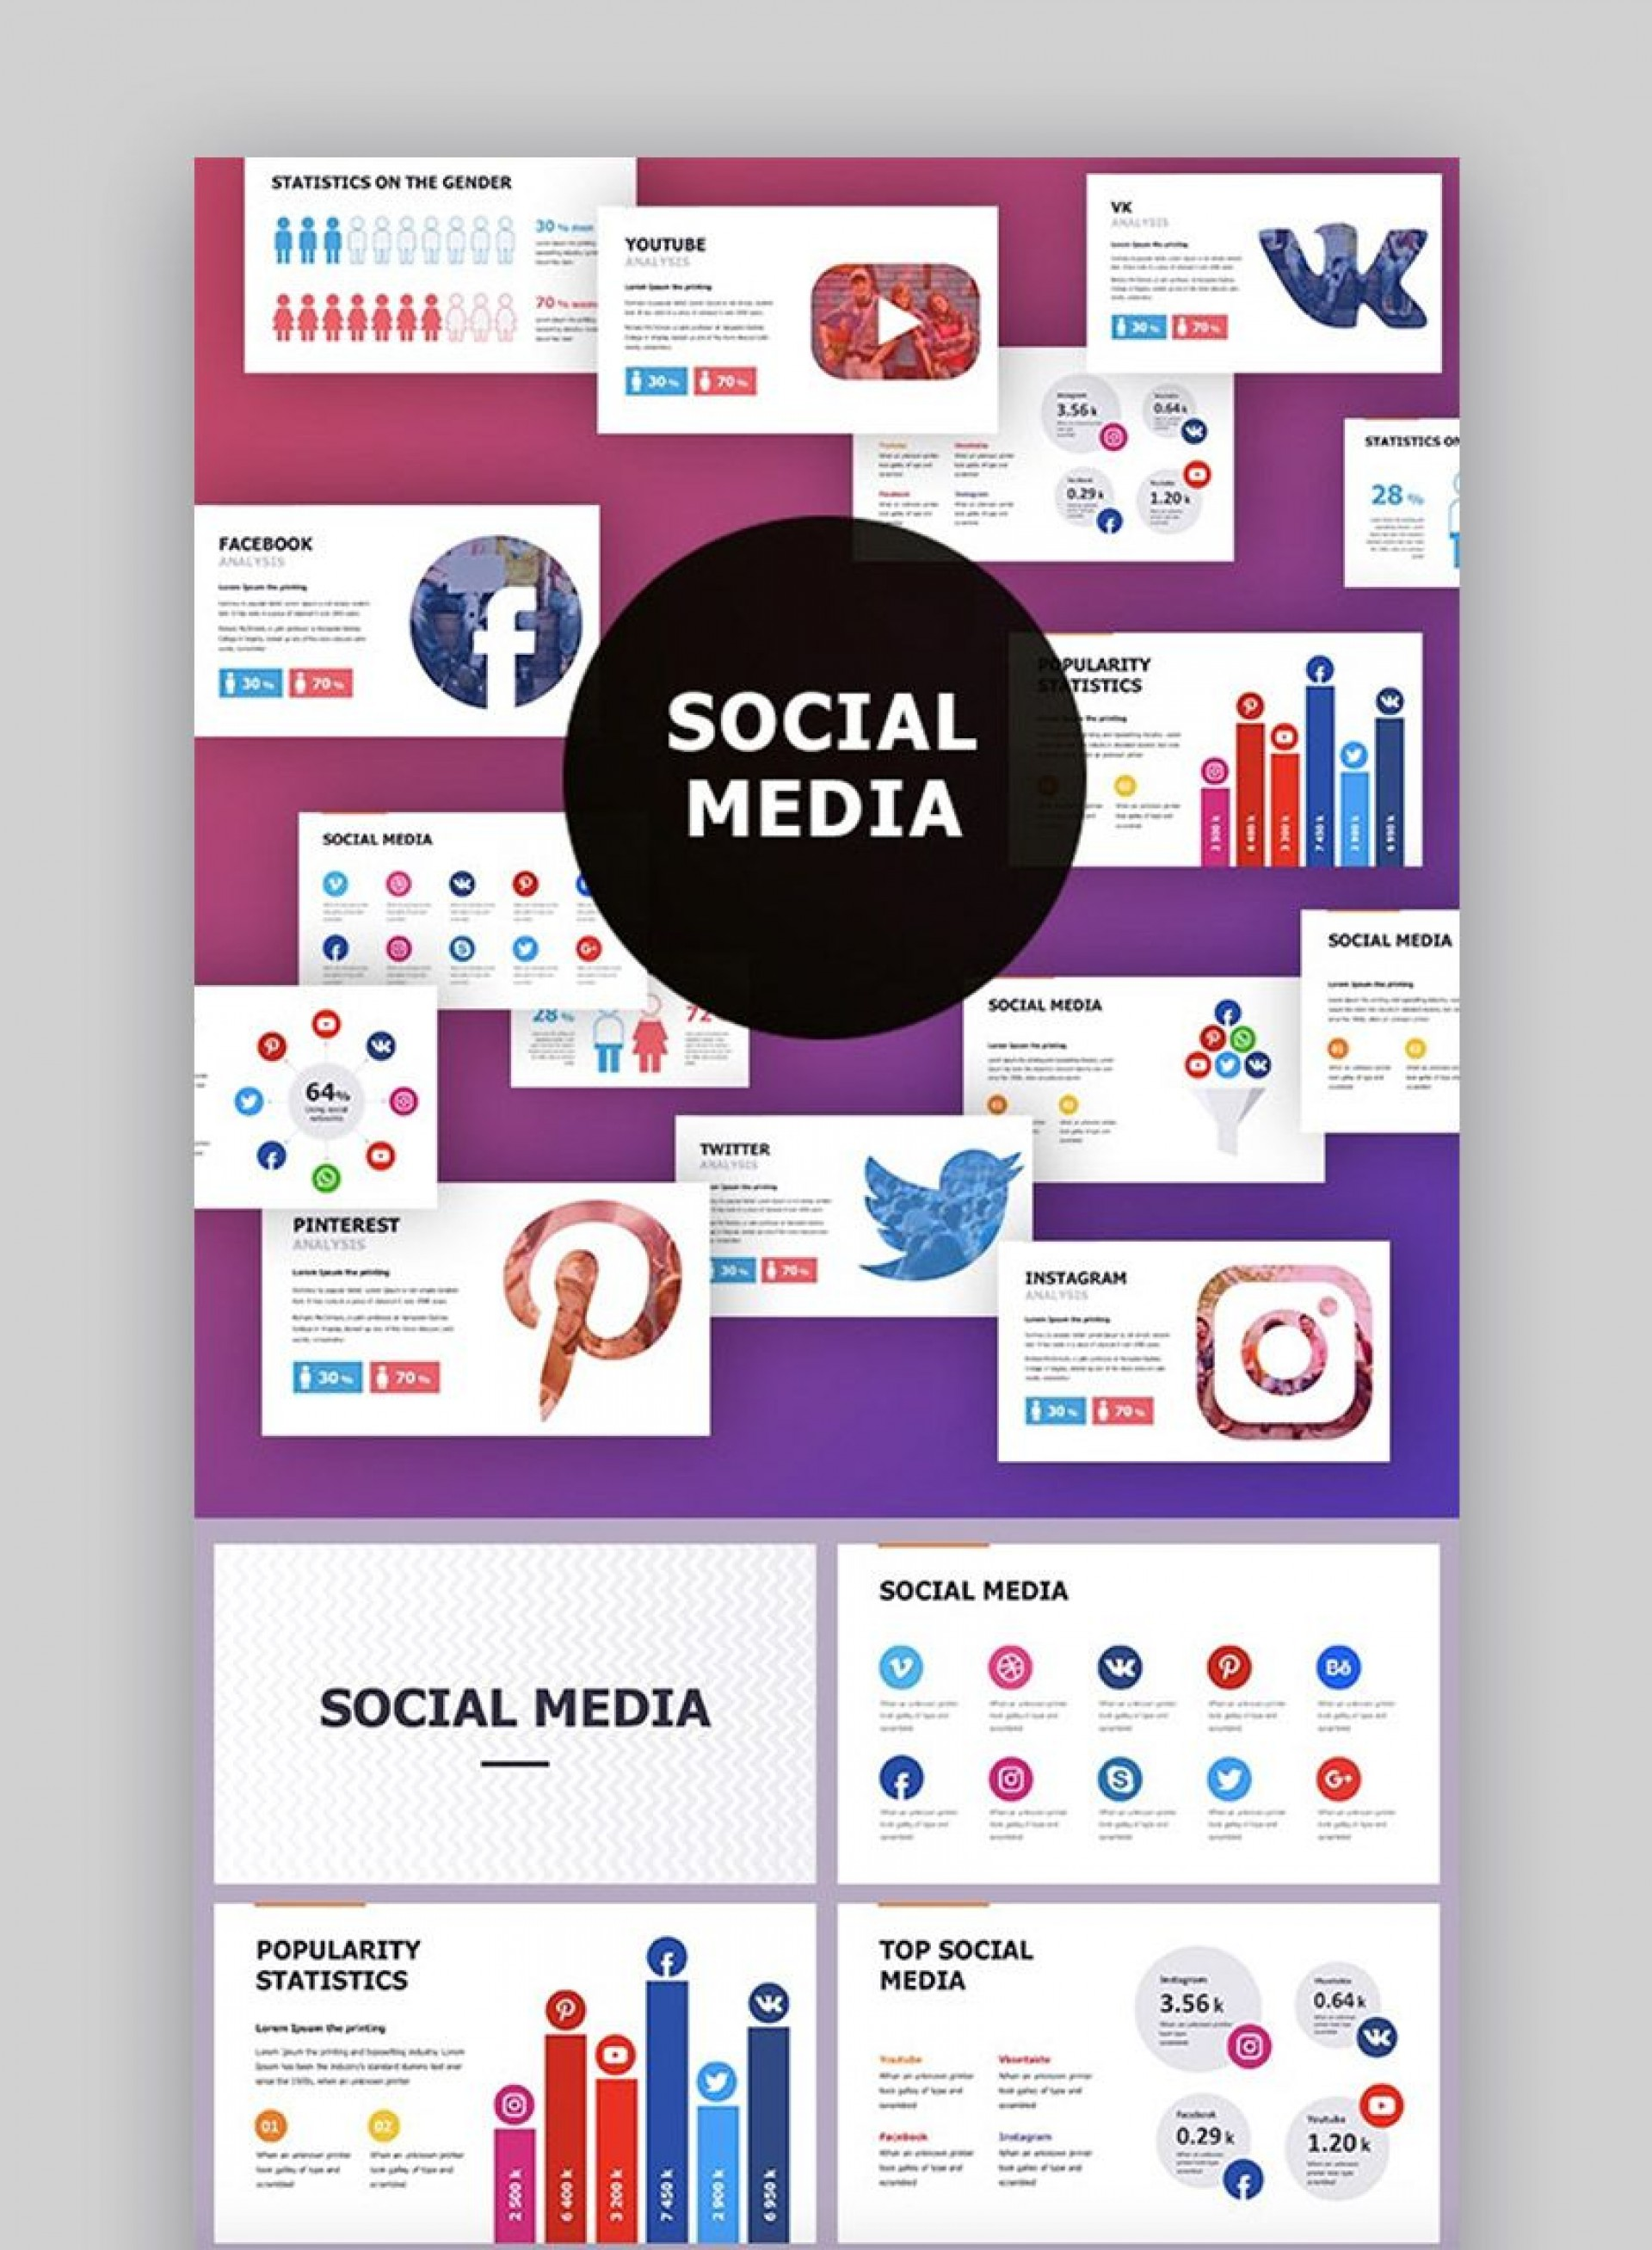 005 Shocking Social Media Strategy Powerpoint Template Image  Marketing Plan Free1920